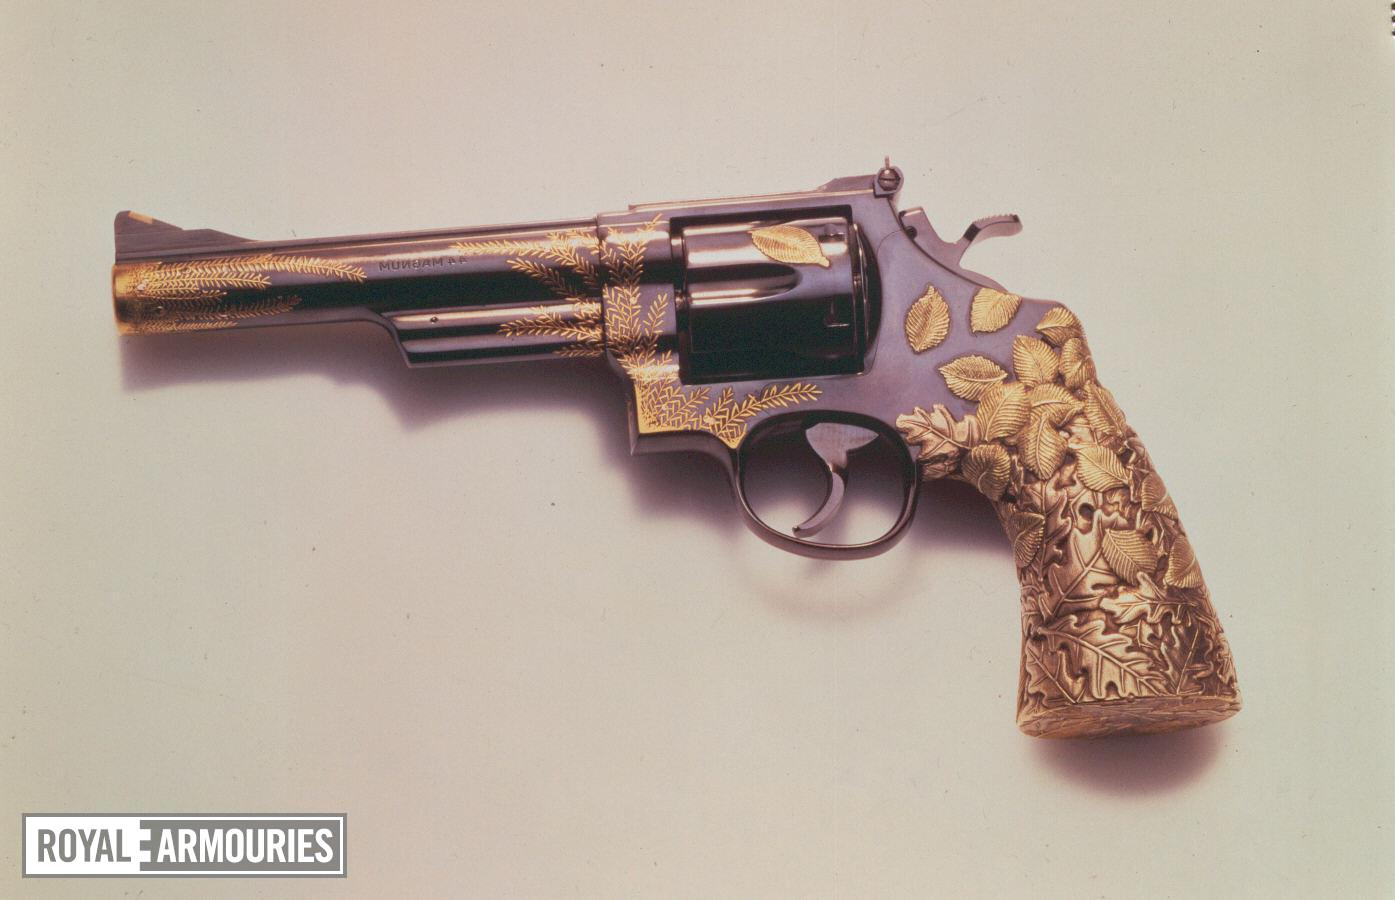 Centrefire six-shot revolver - The Tiffany Revolver Based on a Smith & Wesson Model 29